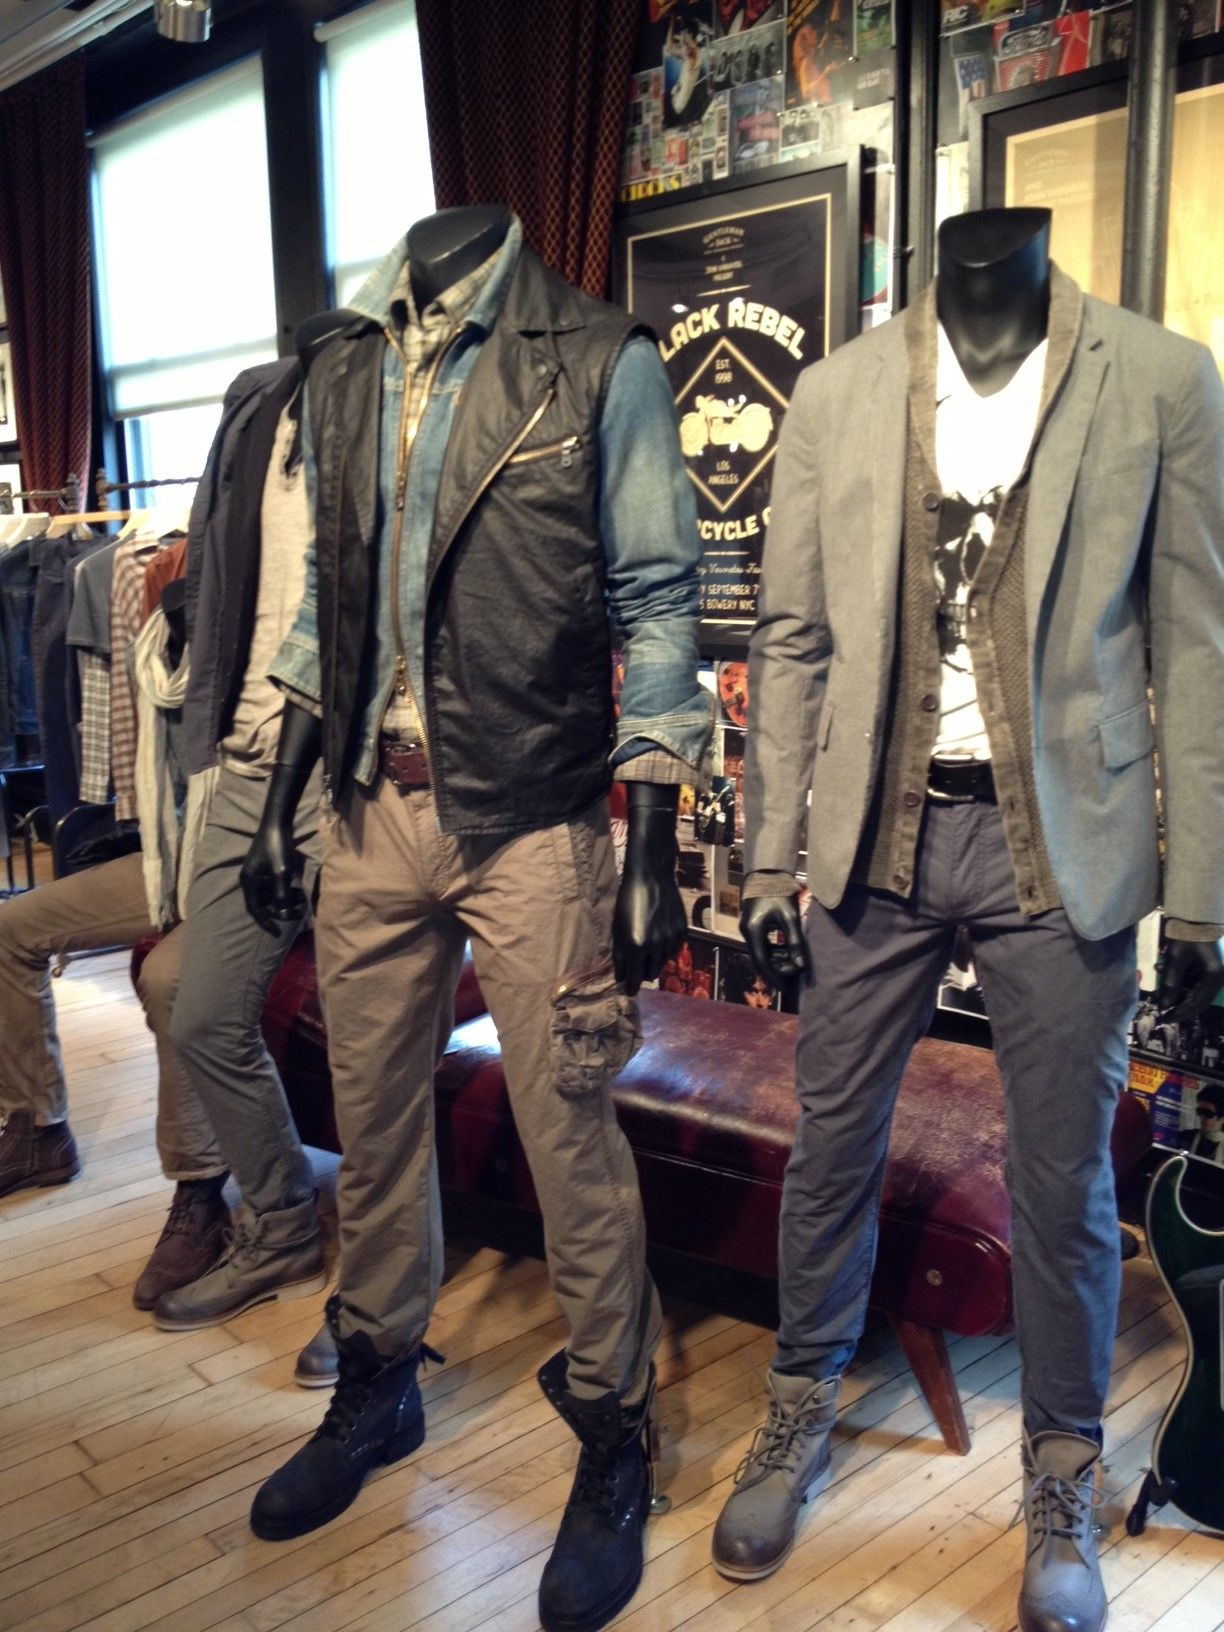 John Varvatos - amazing design from the store to the ...